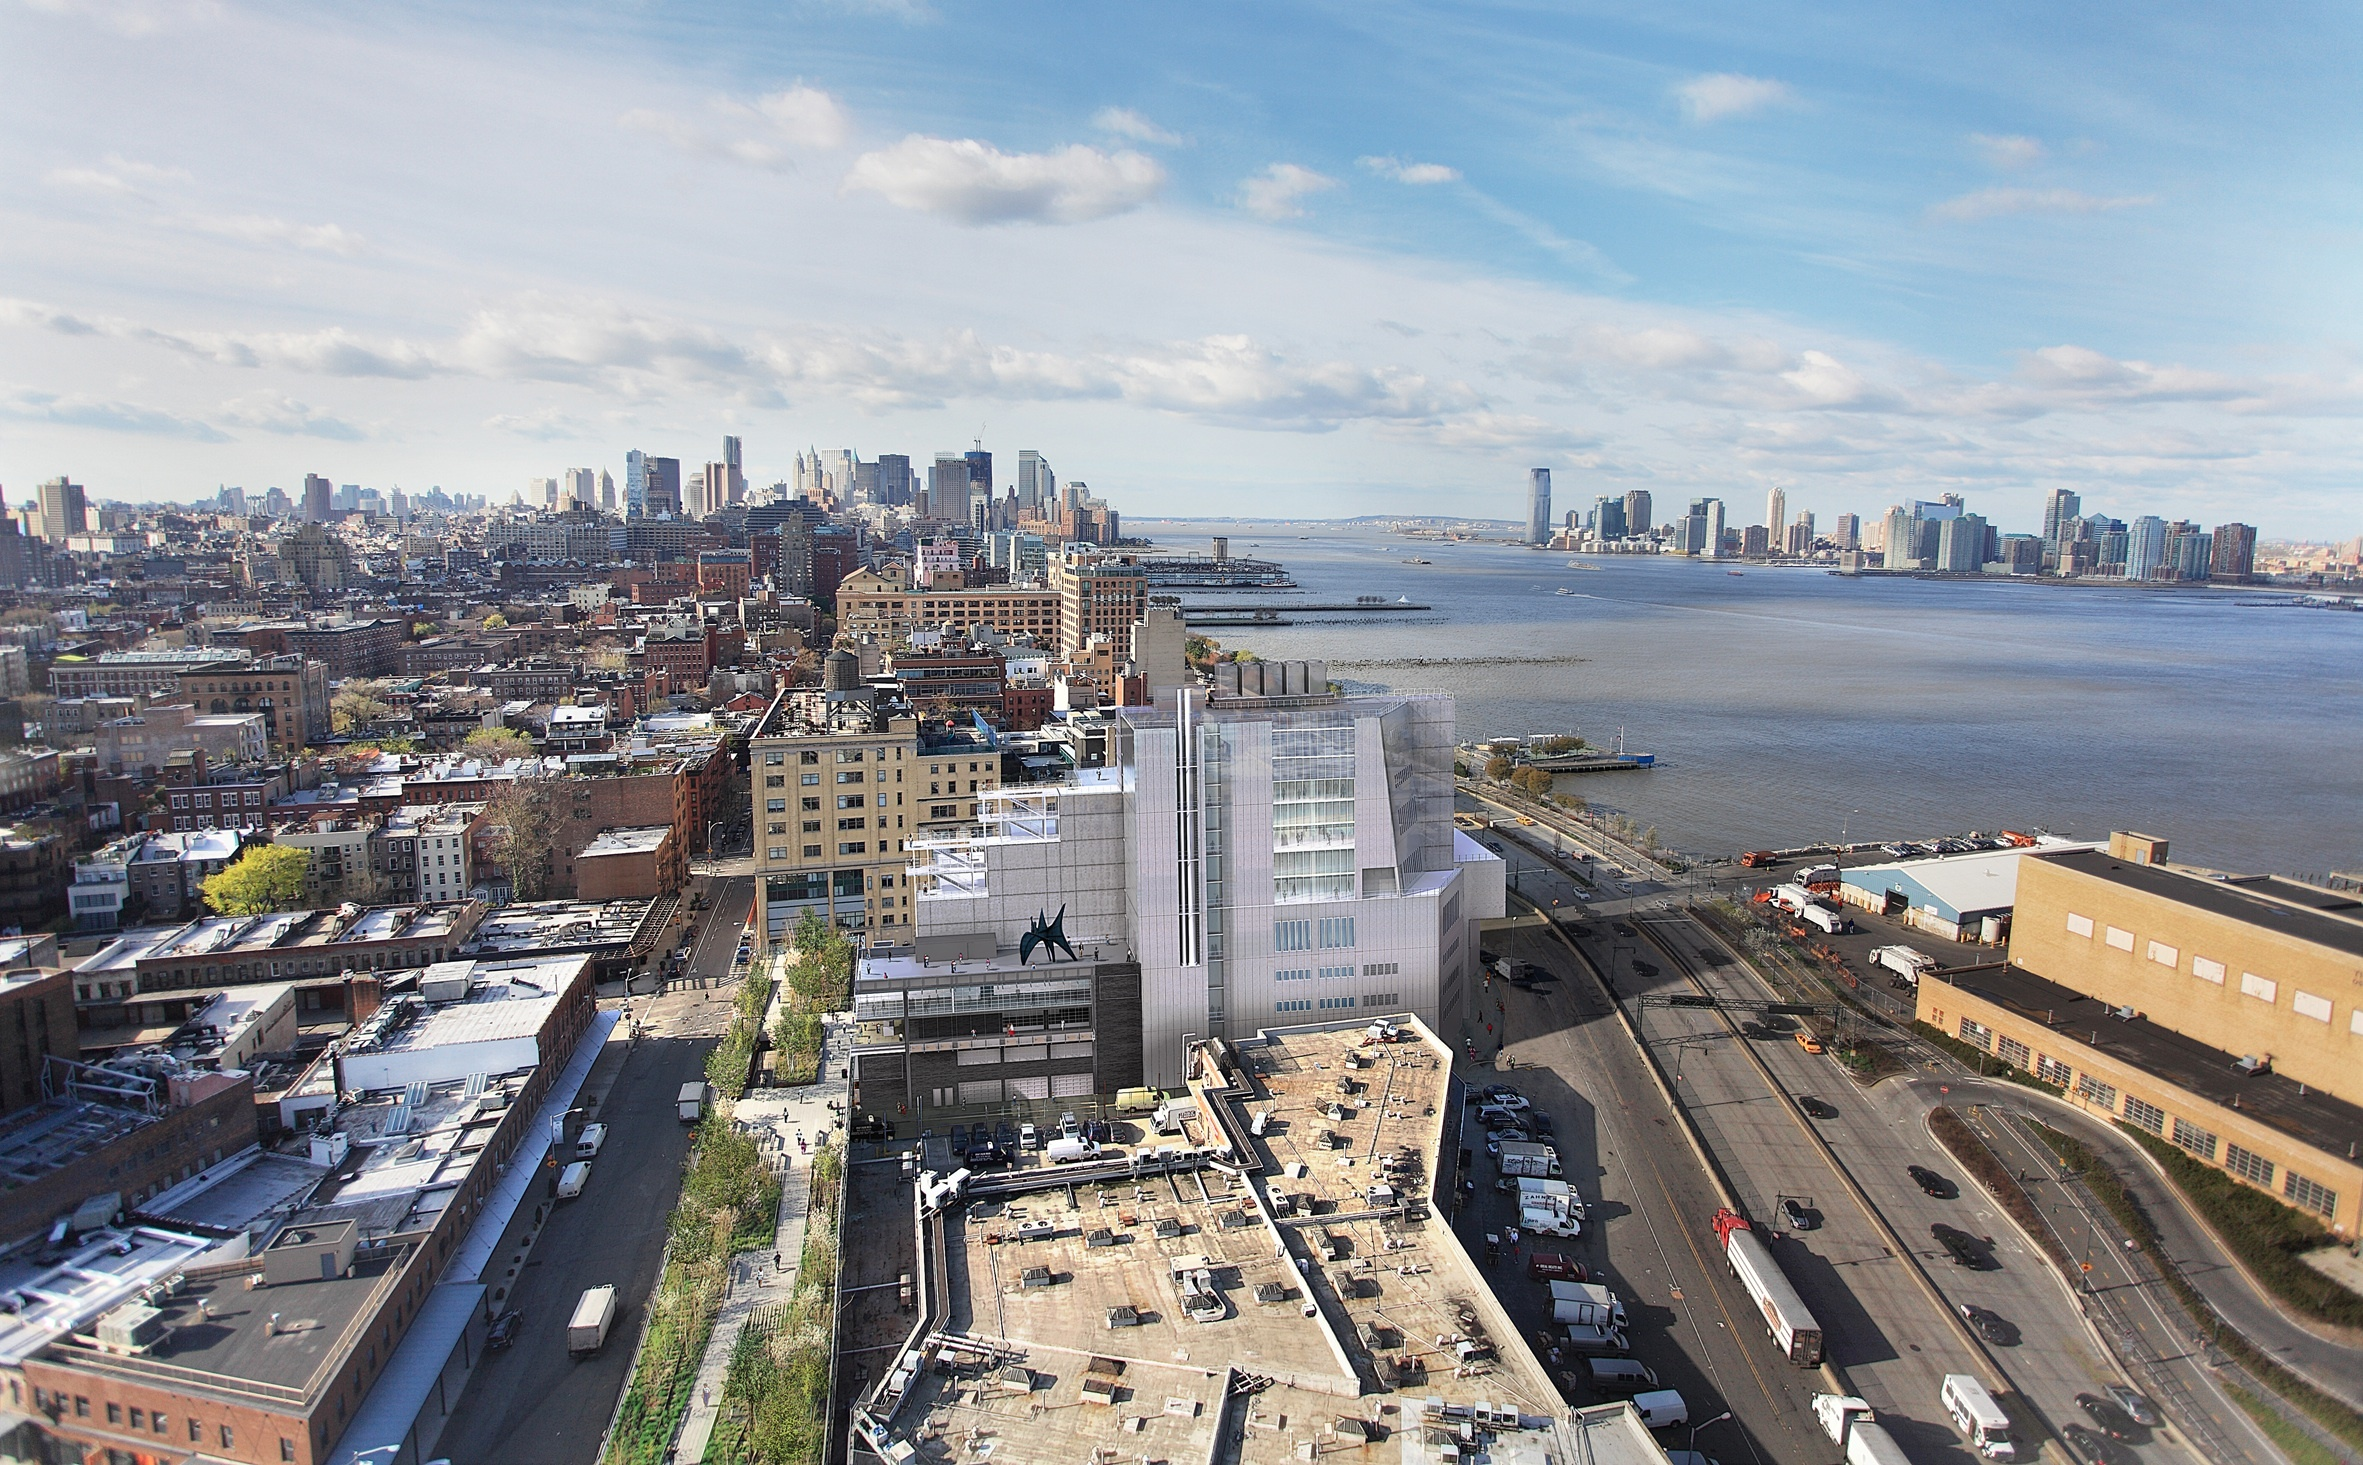 Check out in-construction photos of the Whitney Museum's new building (slide show and video)